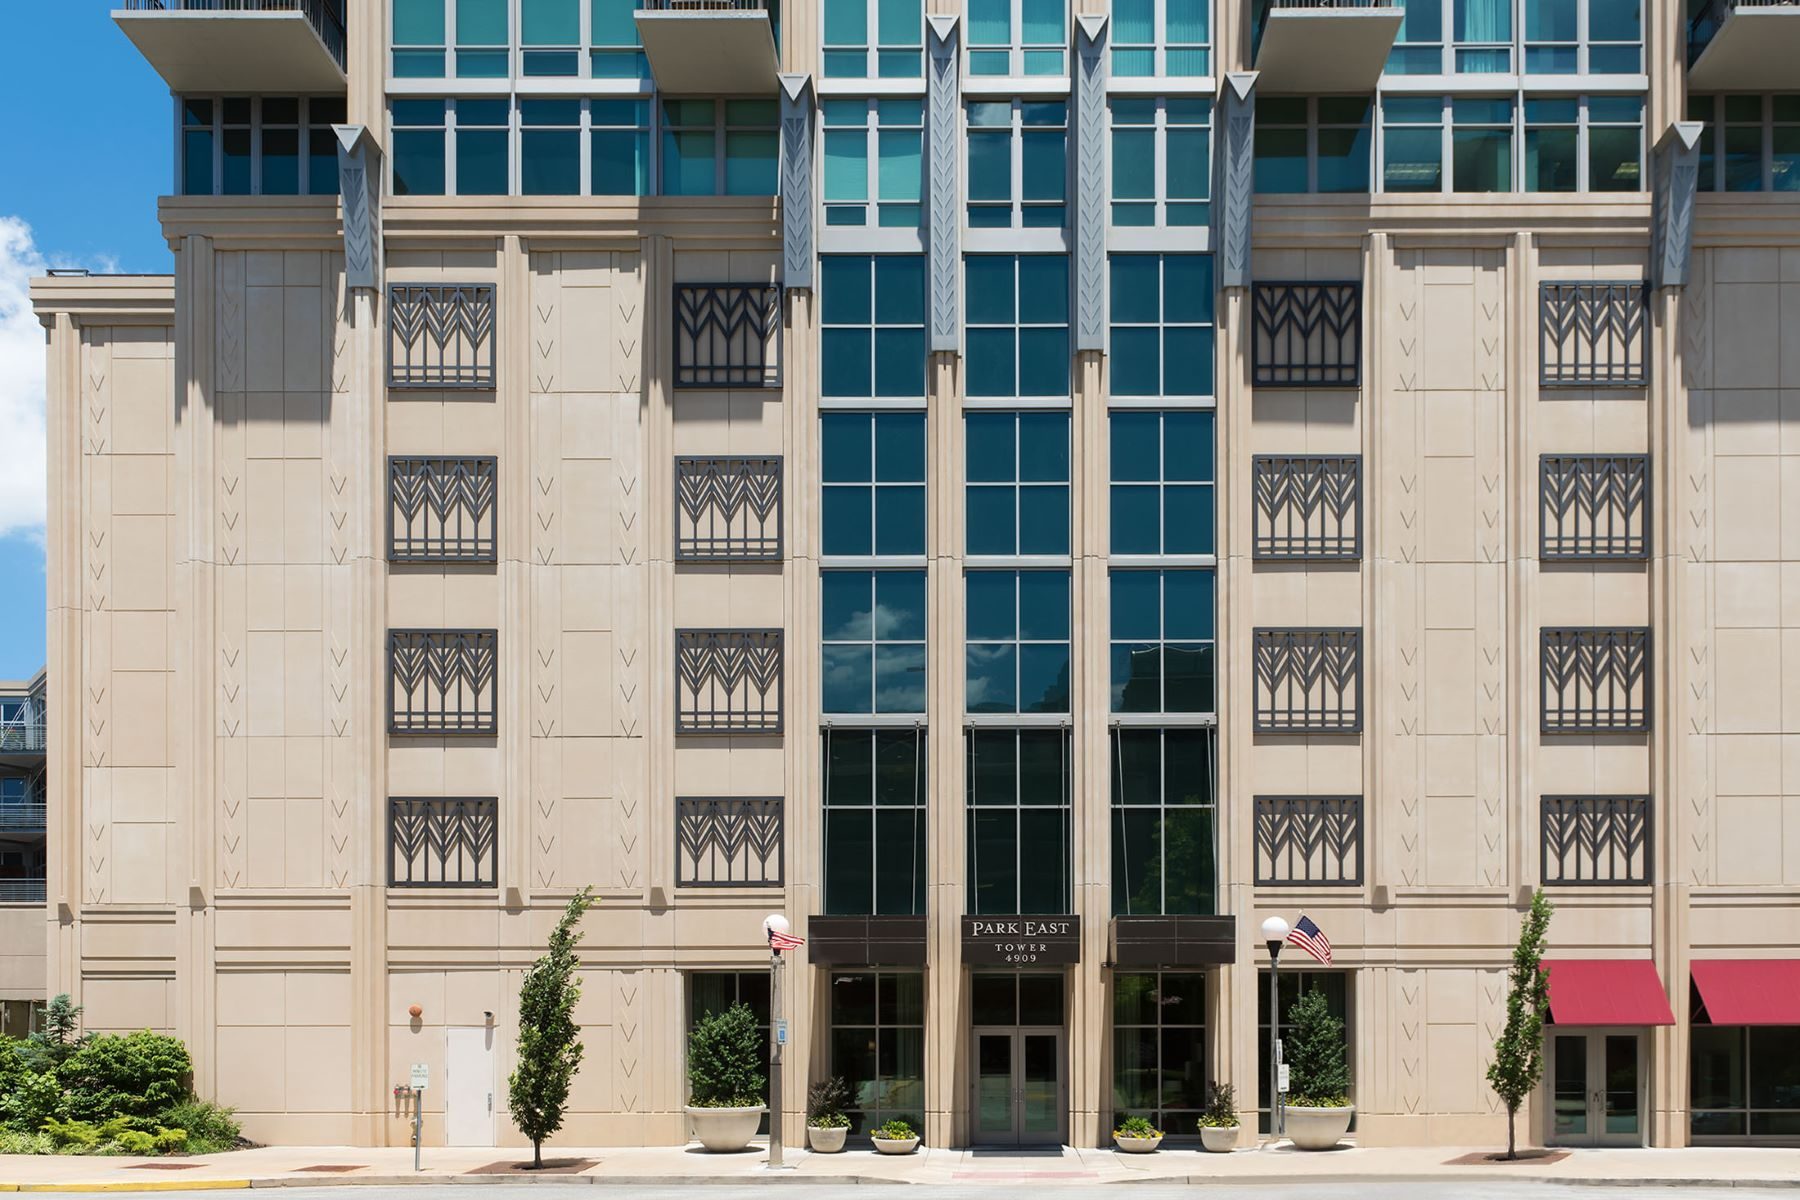 Condominium for Sale at Laclede Ave 4909 Laclede Ave # 1001 St. Louis, Missouri, 63108 United States